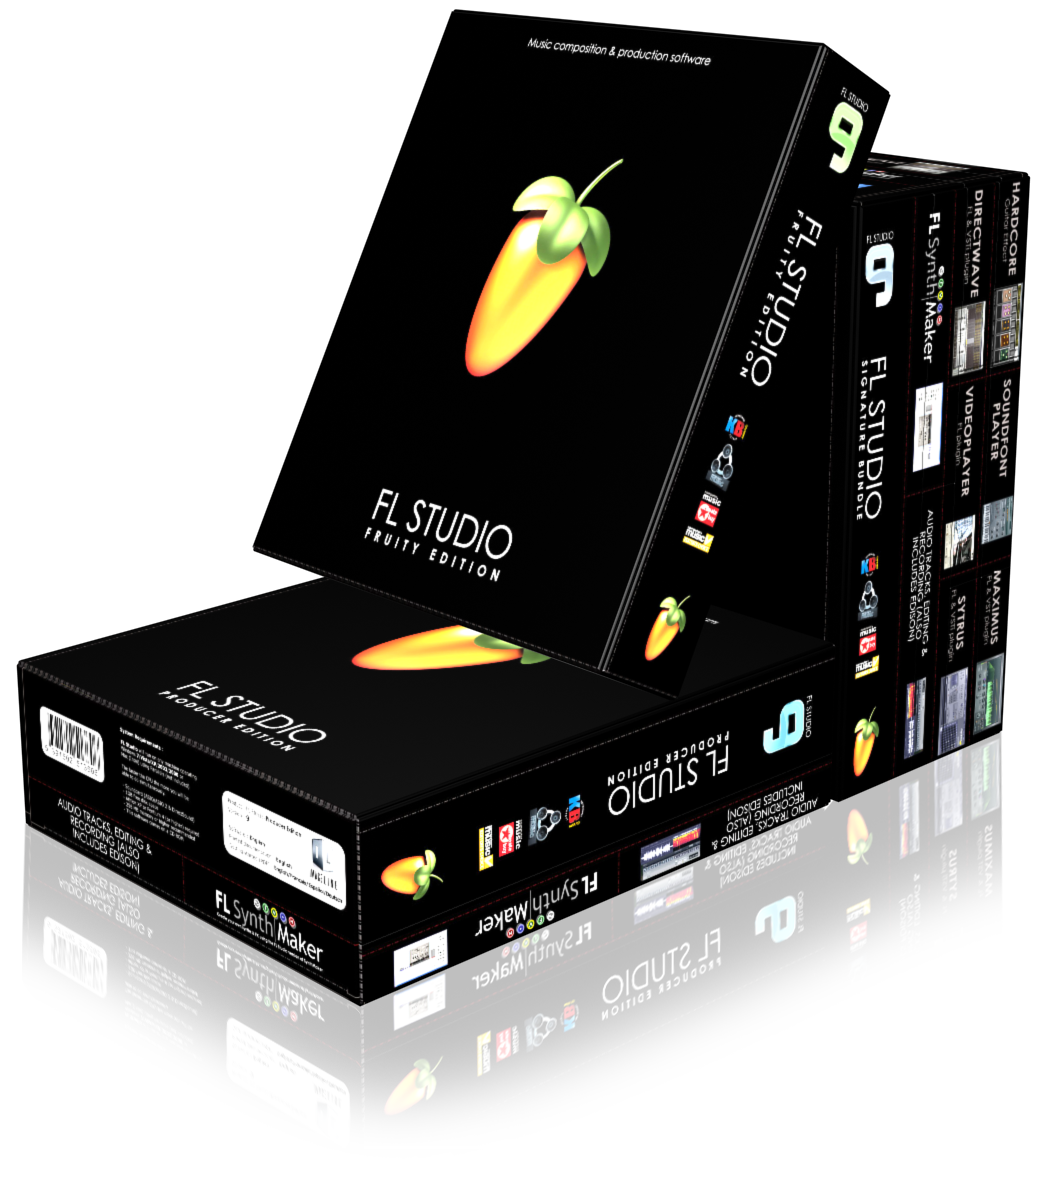 FL Studio 9 boxes stacked